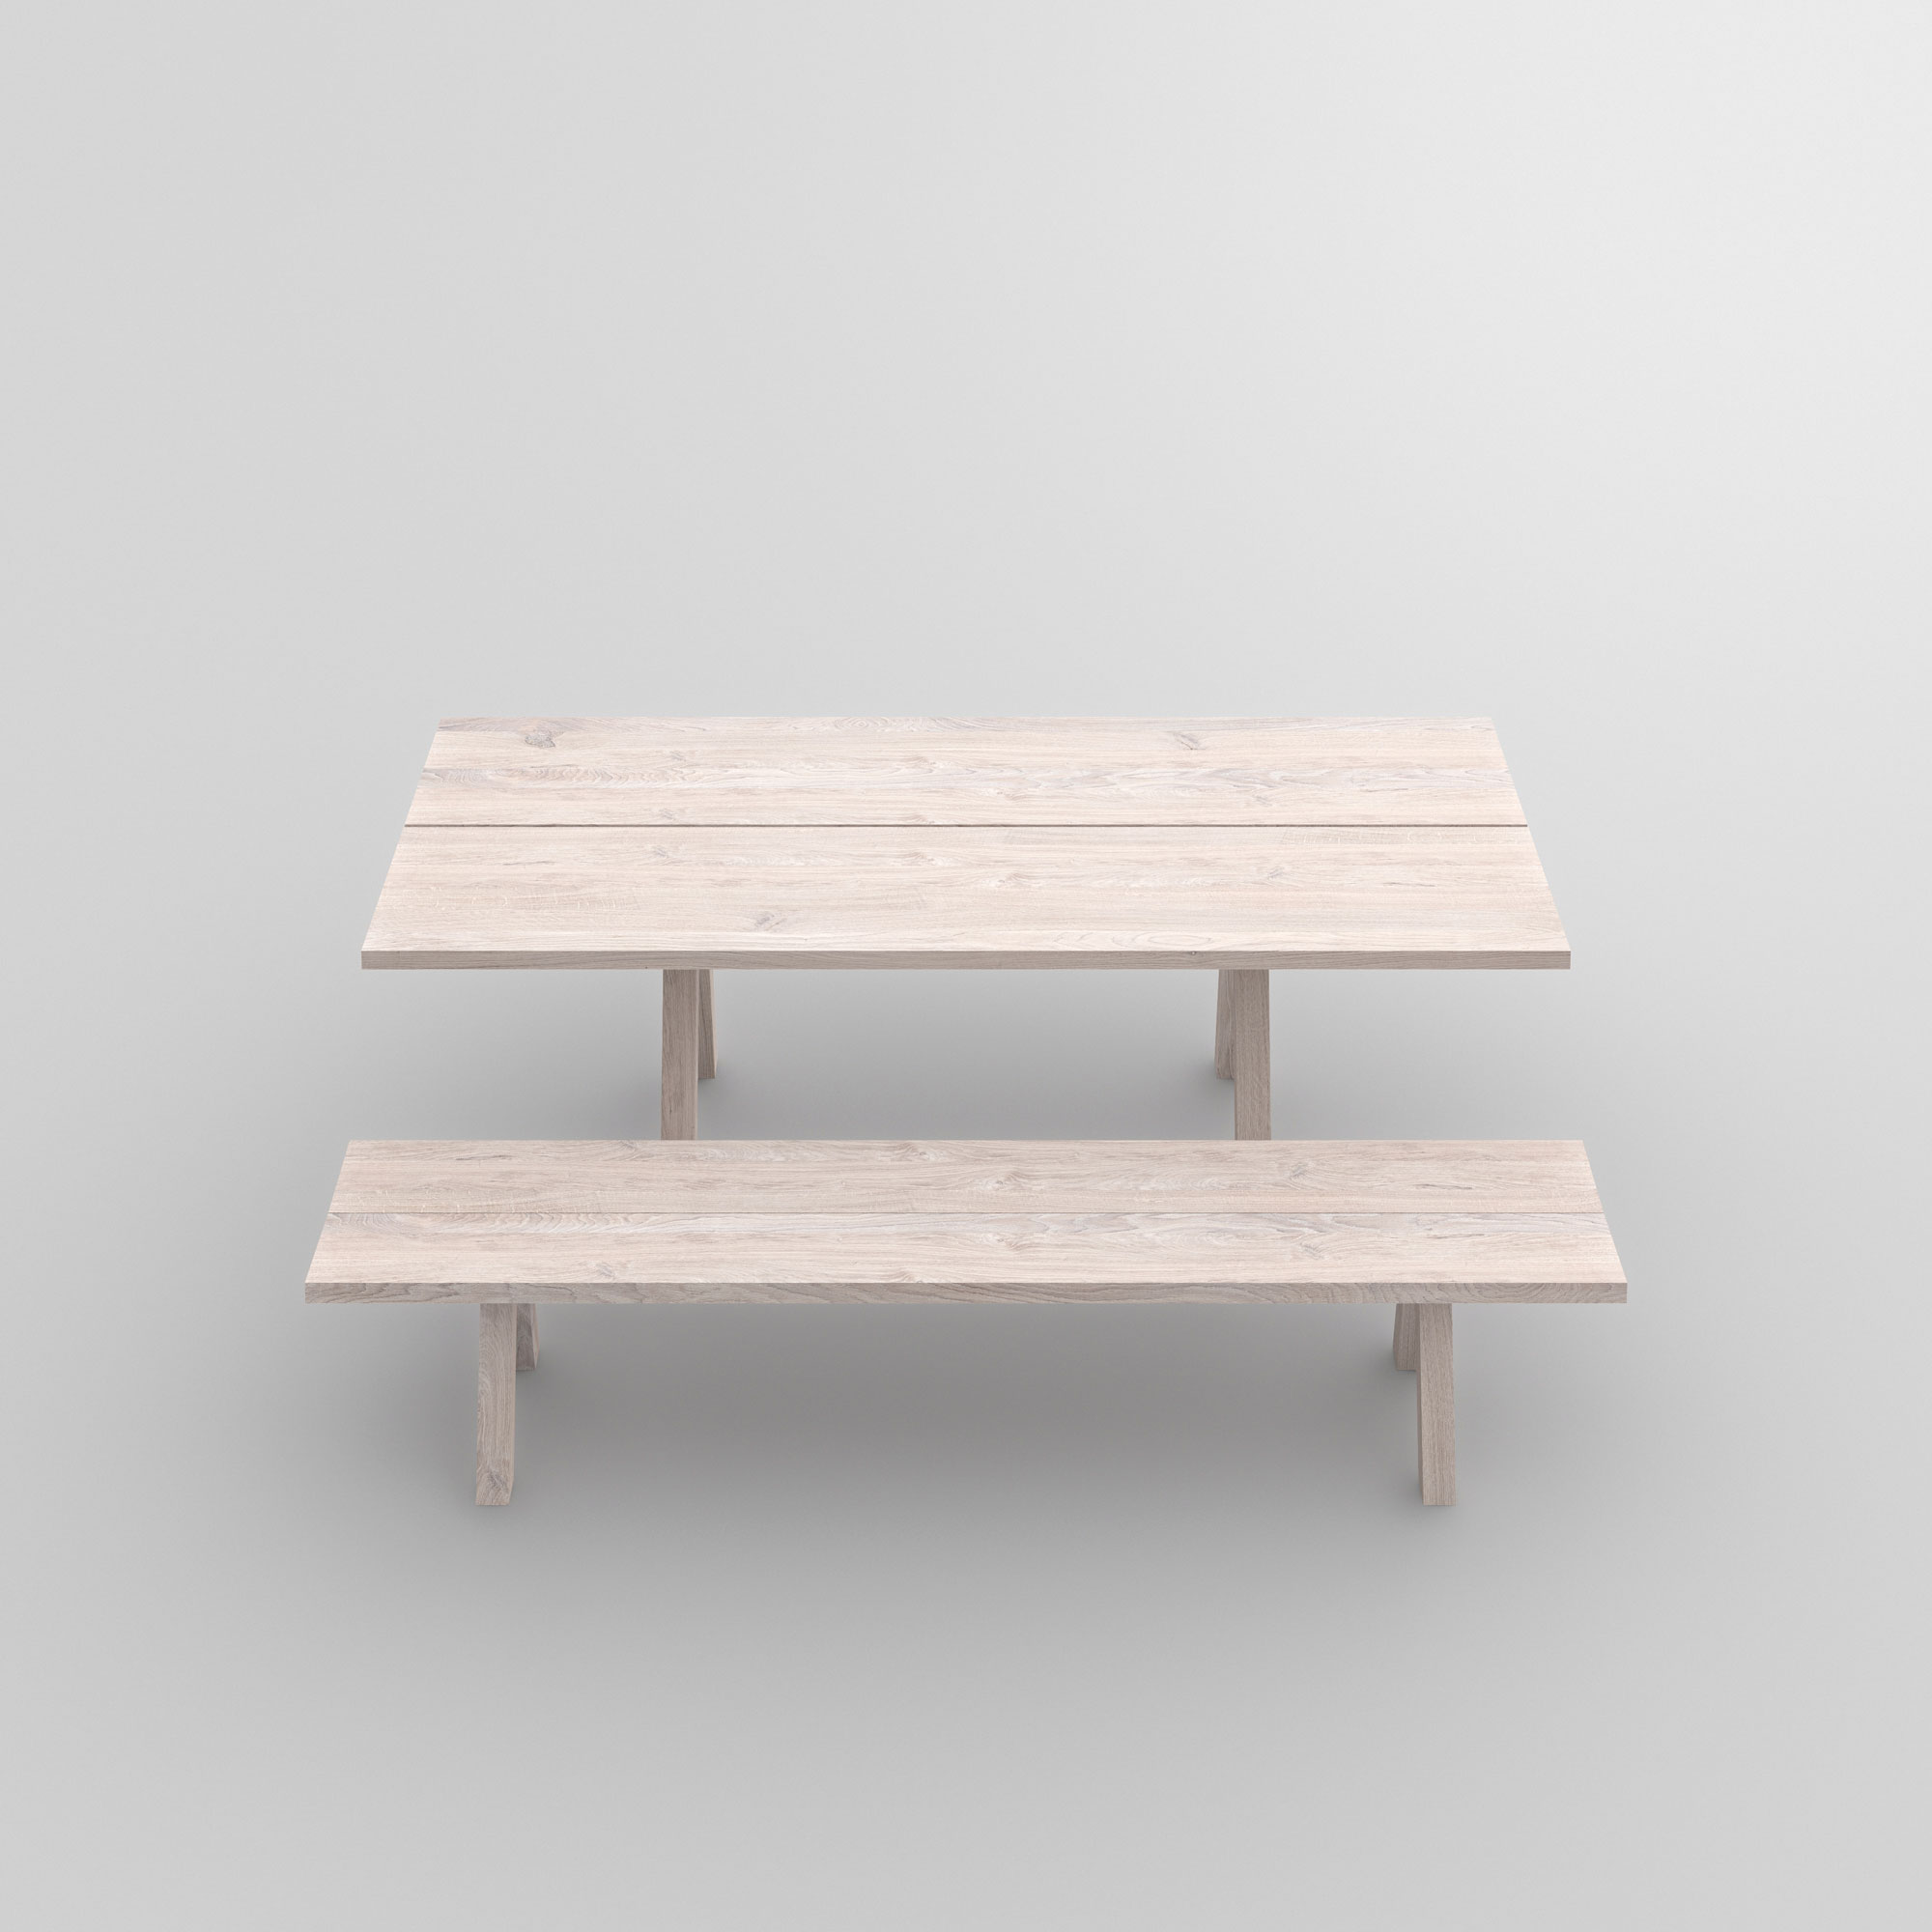 Tree Trunk Bench PAPILIO BASIC cam2 custom made in solid wood by vitamin design